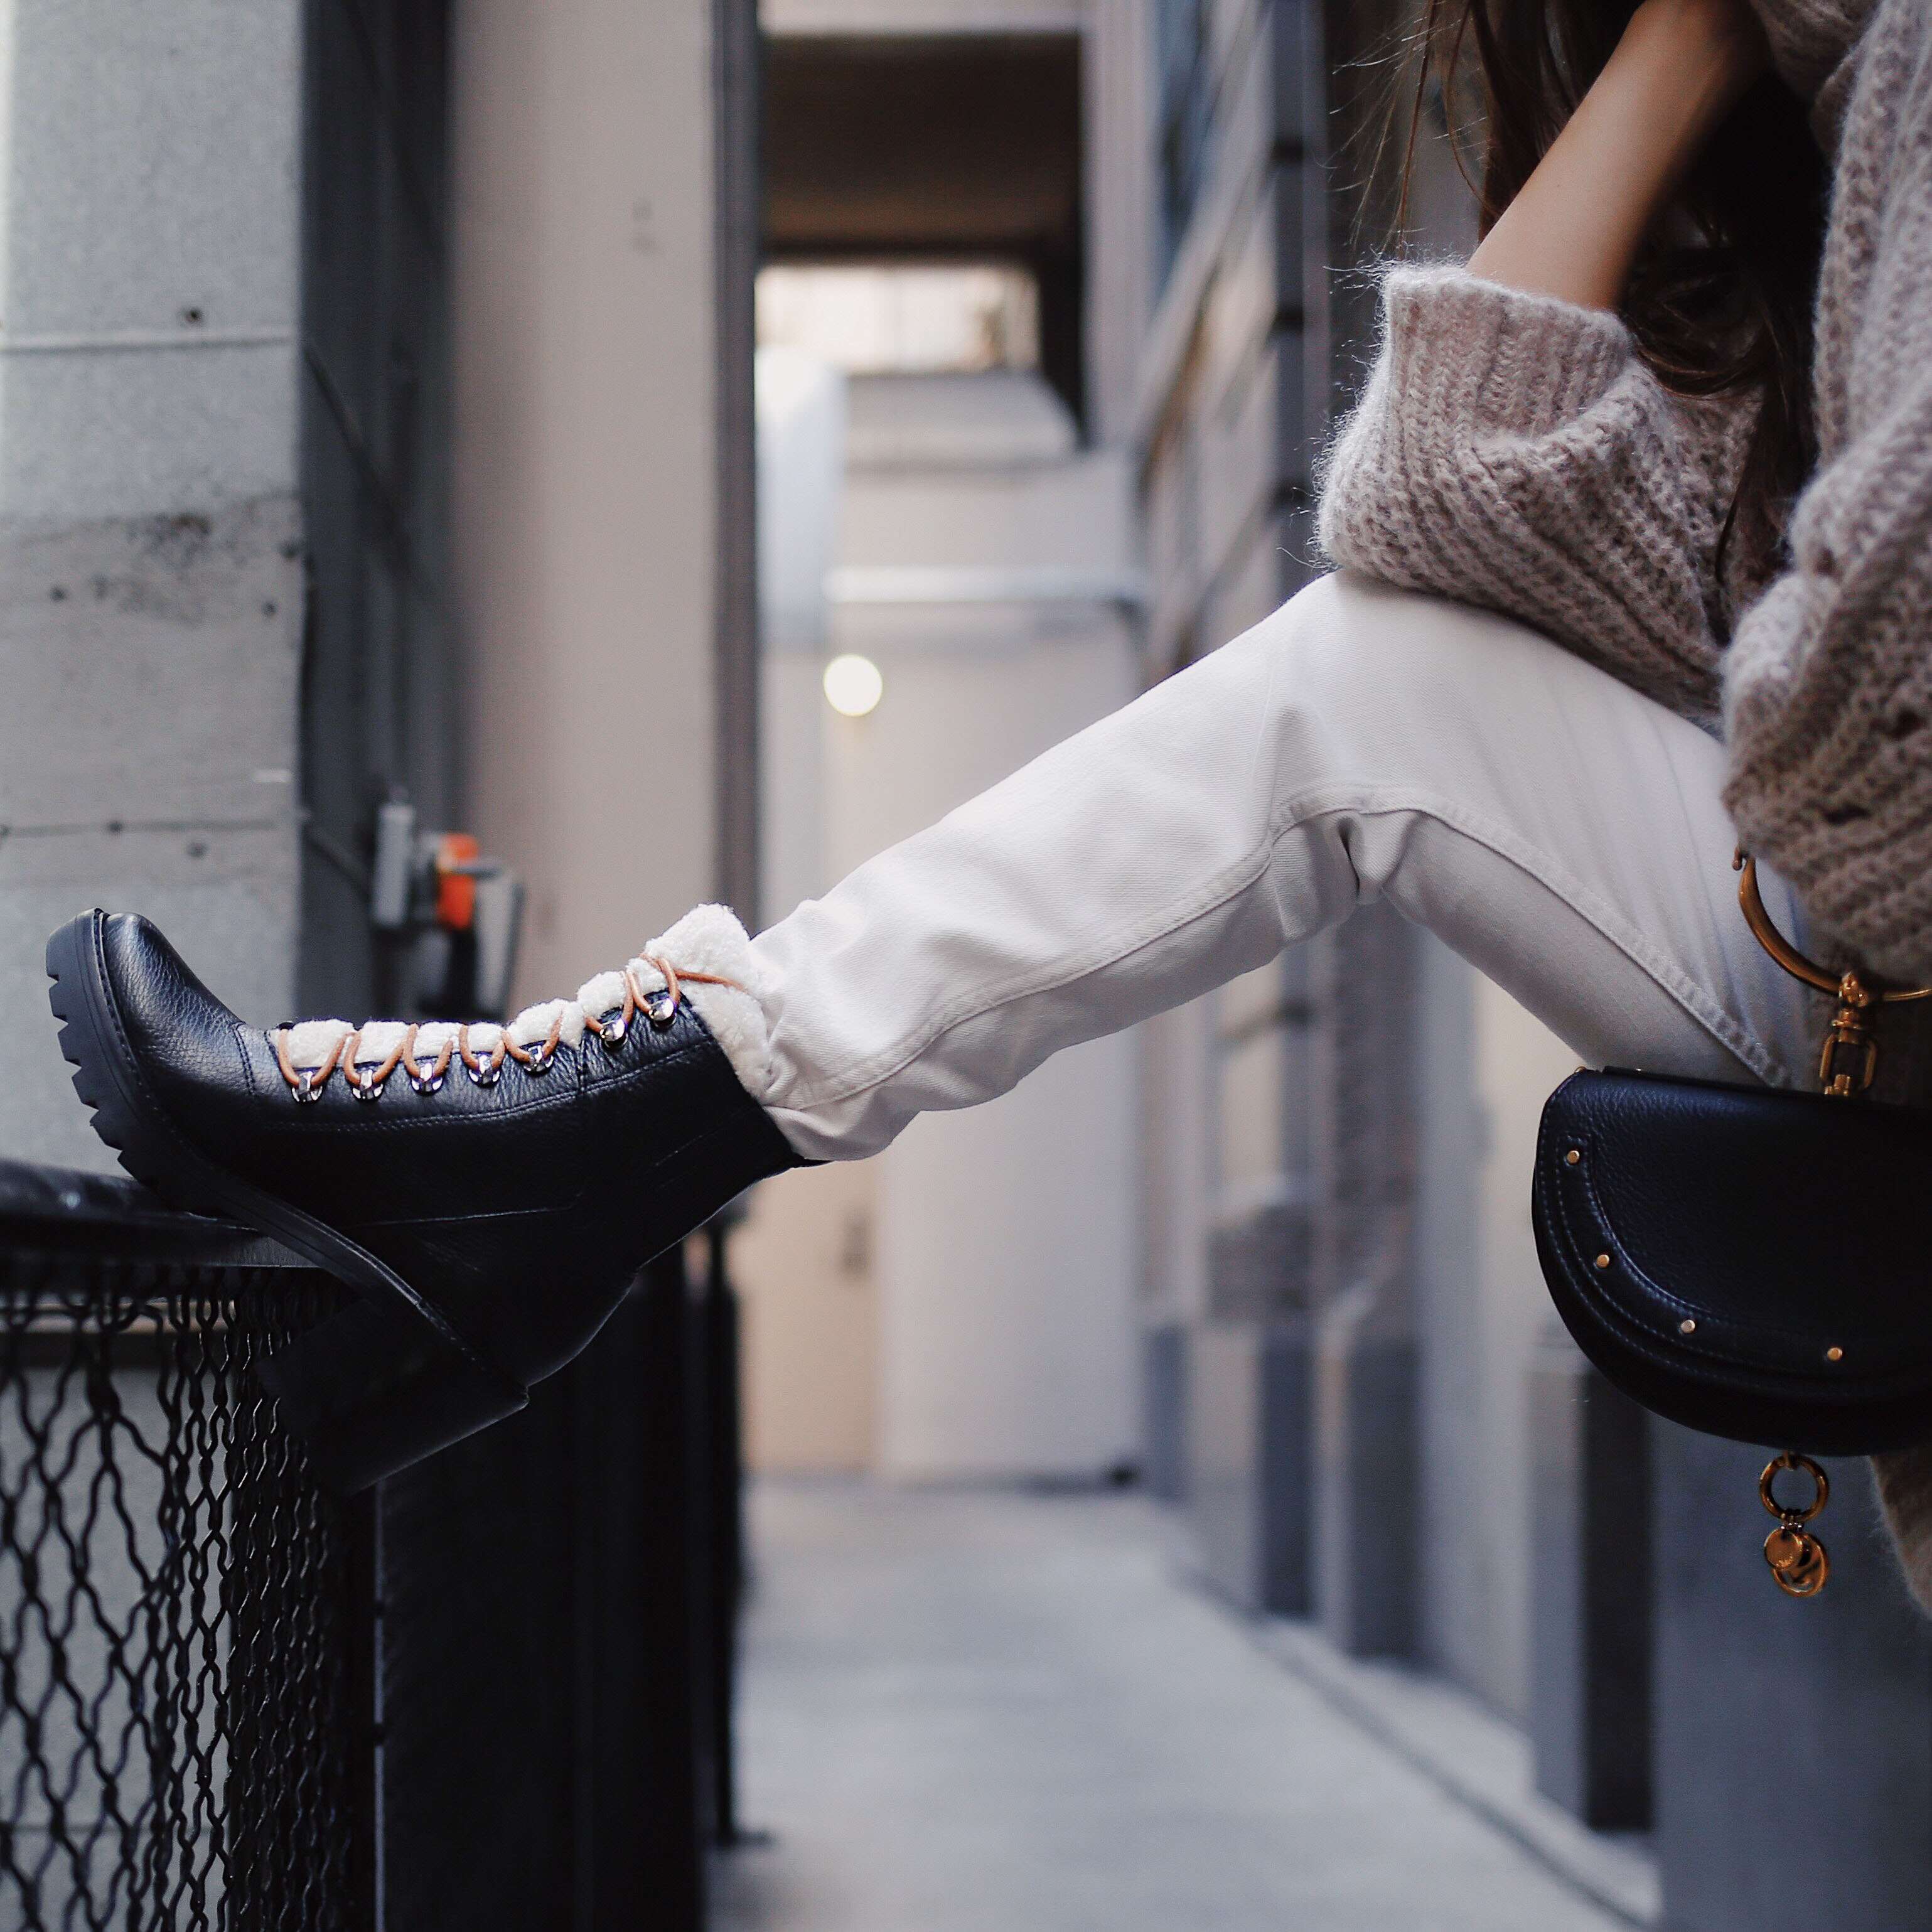 806af35d8b4 5 best Fall Winter 2019 Shoes and Boots trends - Mode Rsvp